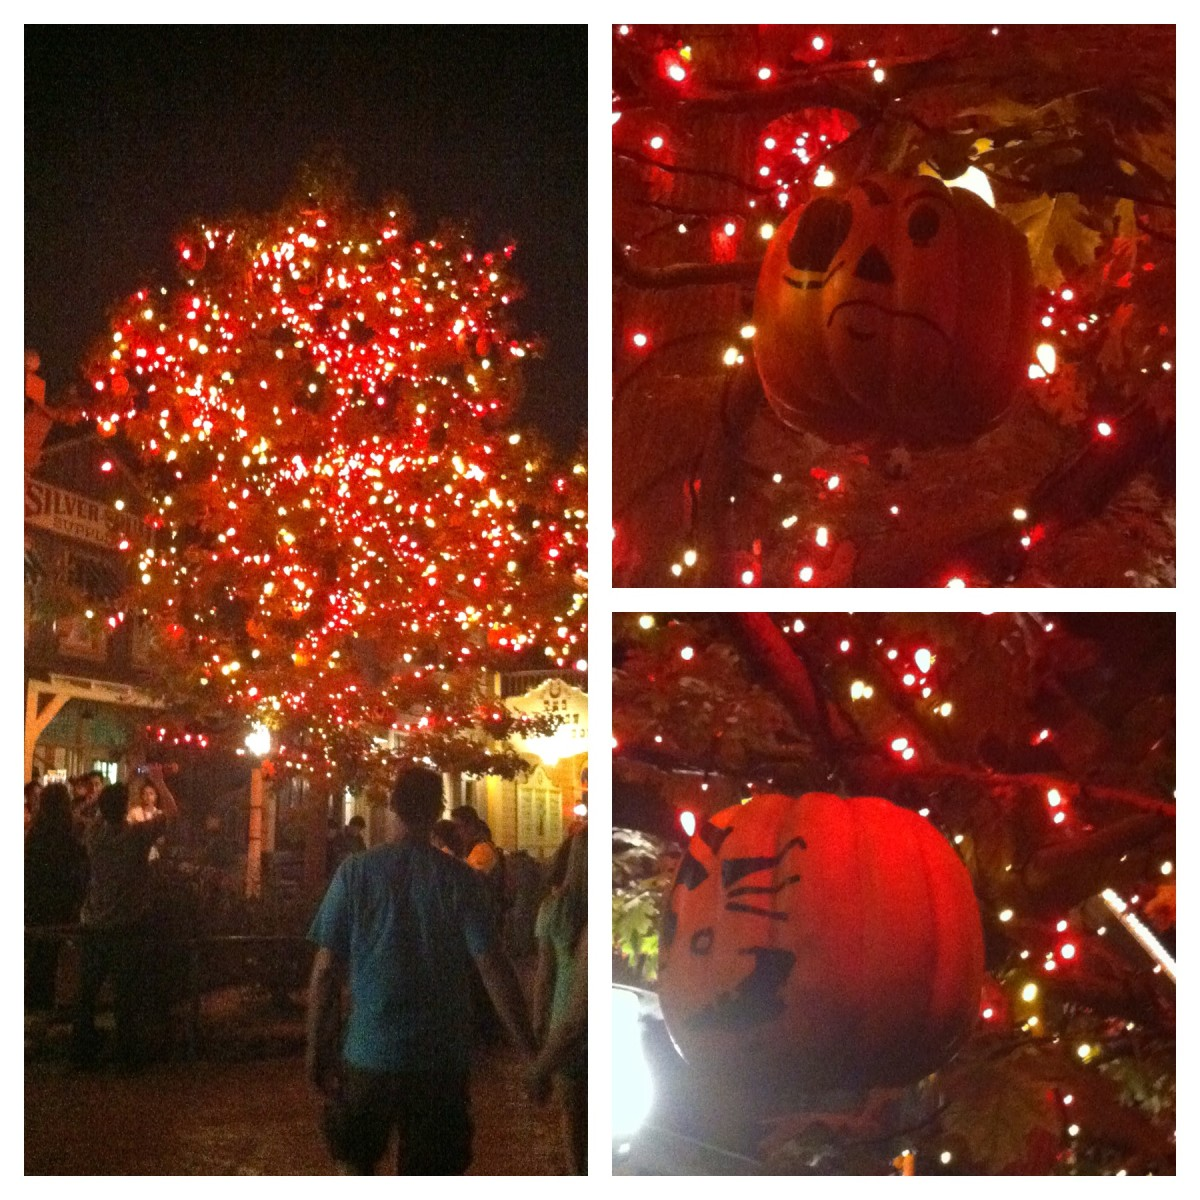 Visit the Halloween Tree, which is inspired by a Ray Bradbury book.